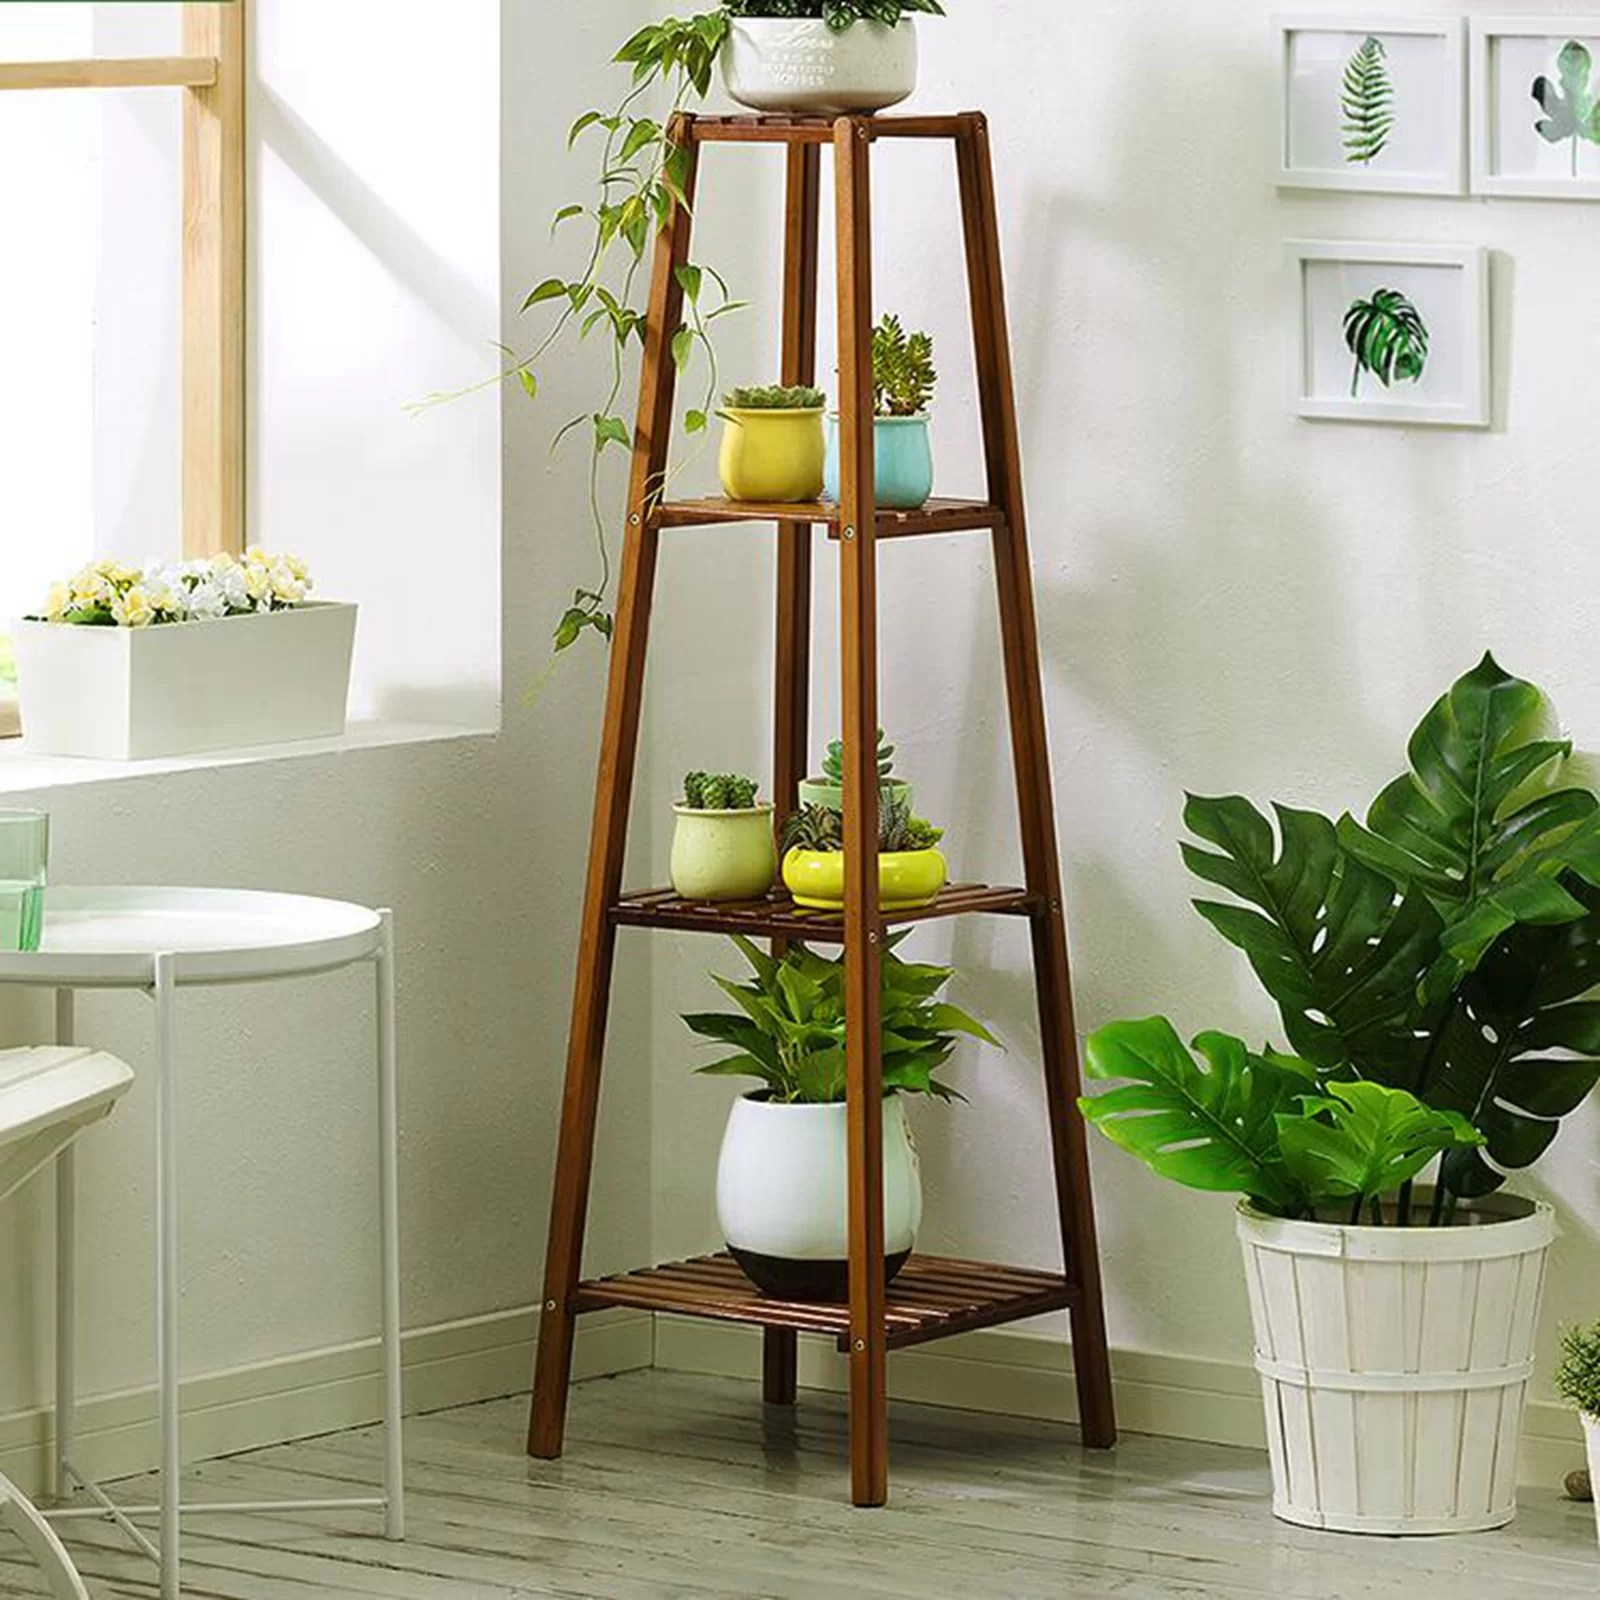 Gracie Oaks Taranto Multi Tiered Plant Stand Reviews Wayfair